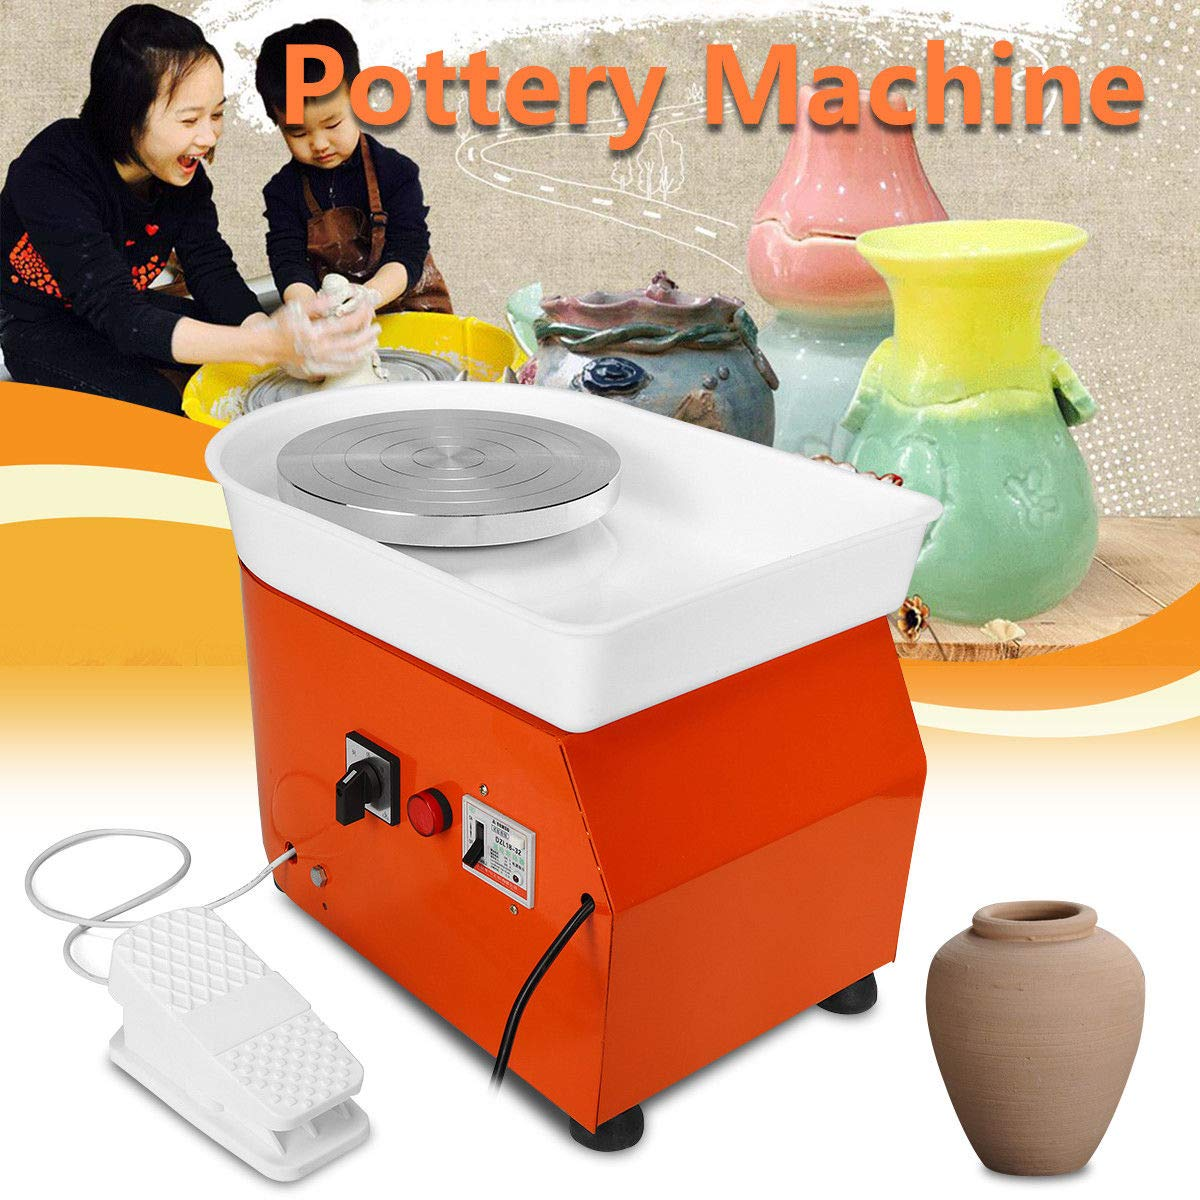 Barbella Pottery Wheel Pottery Forming Machine 250W Electric Pottery Wheel DIY Clay Tool with Tray for Ceramic Work Ceramics Clay (Orange) by Barbella (Image #1)